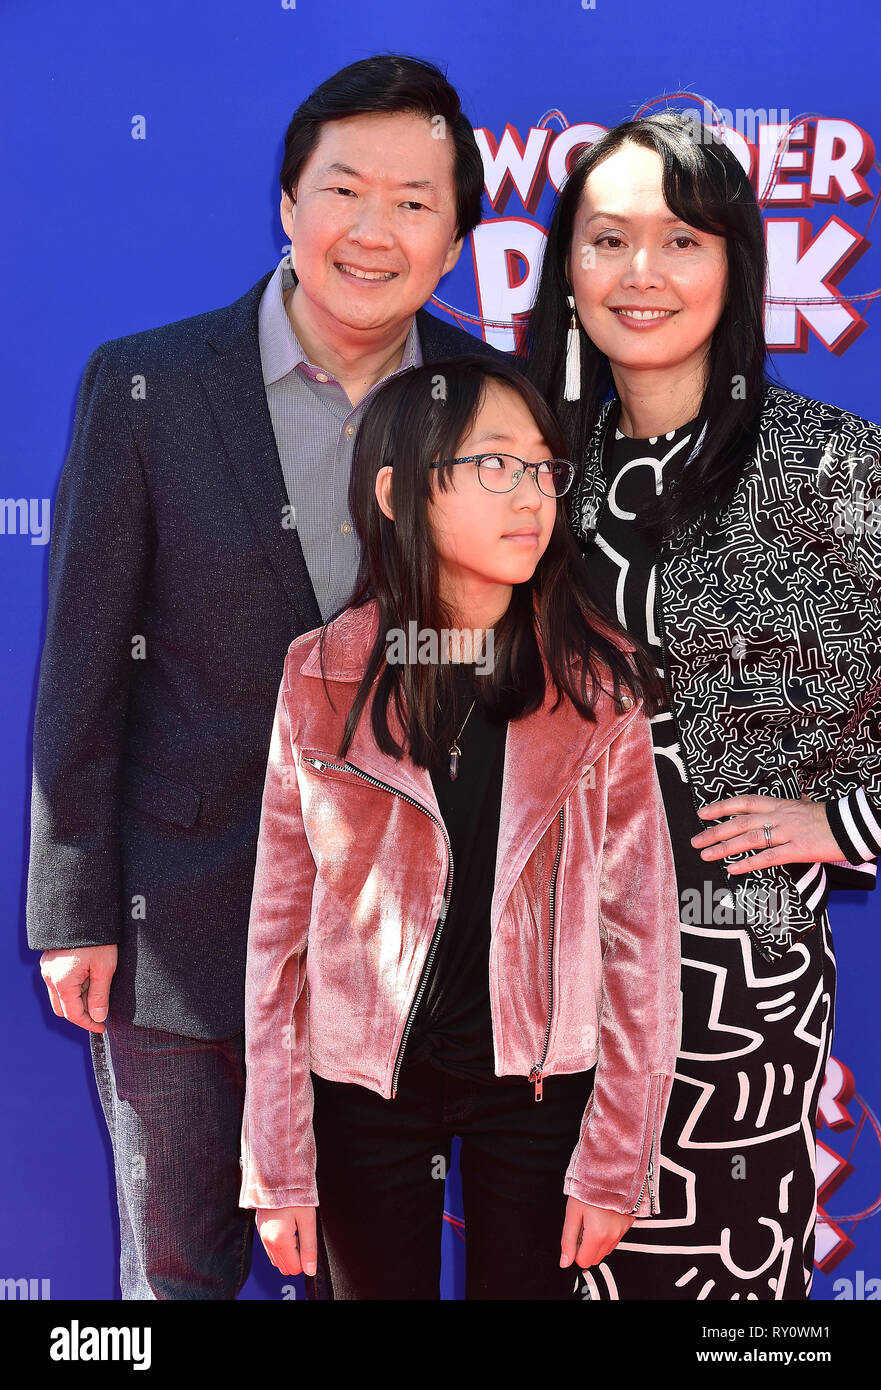 Westwood Ca March 10 Ken Jeong L And Tran Jeong Arrive For The Premiere Of Paramount Pictures Wonder Park Held At Regency Bruin Theatre On Ma Stock Photo Alamy